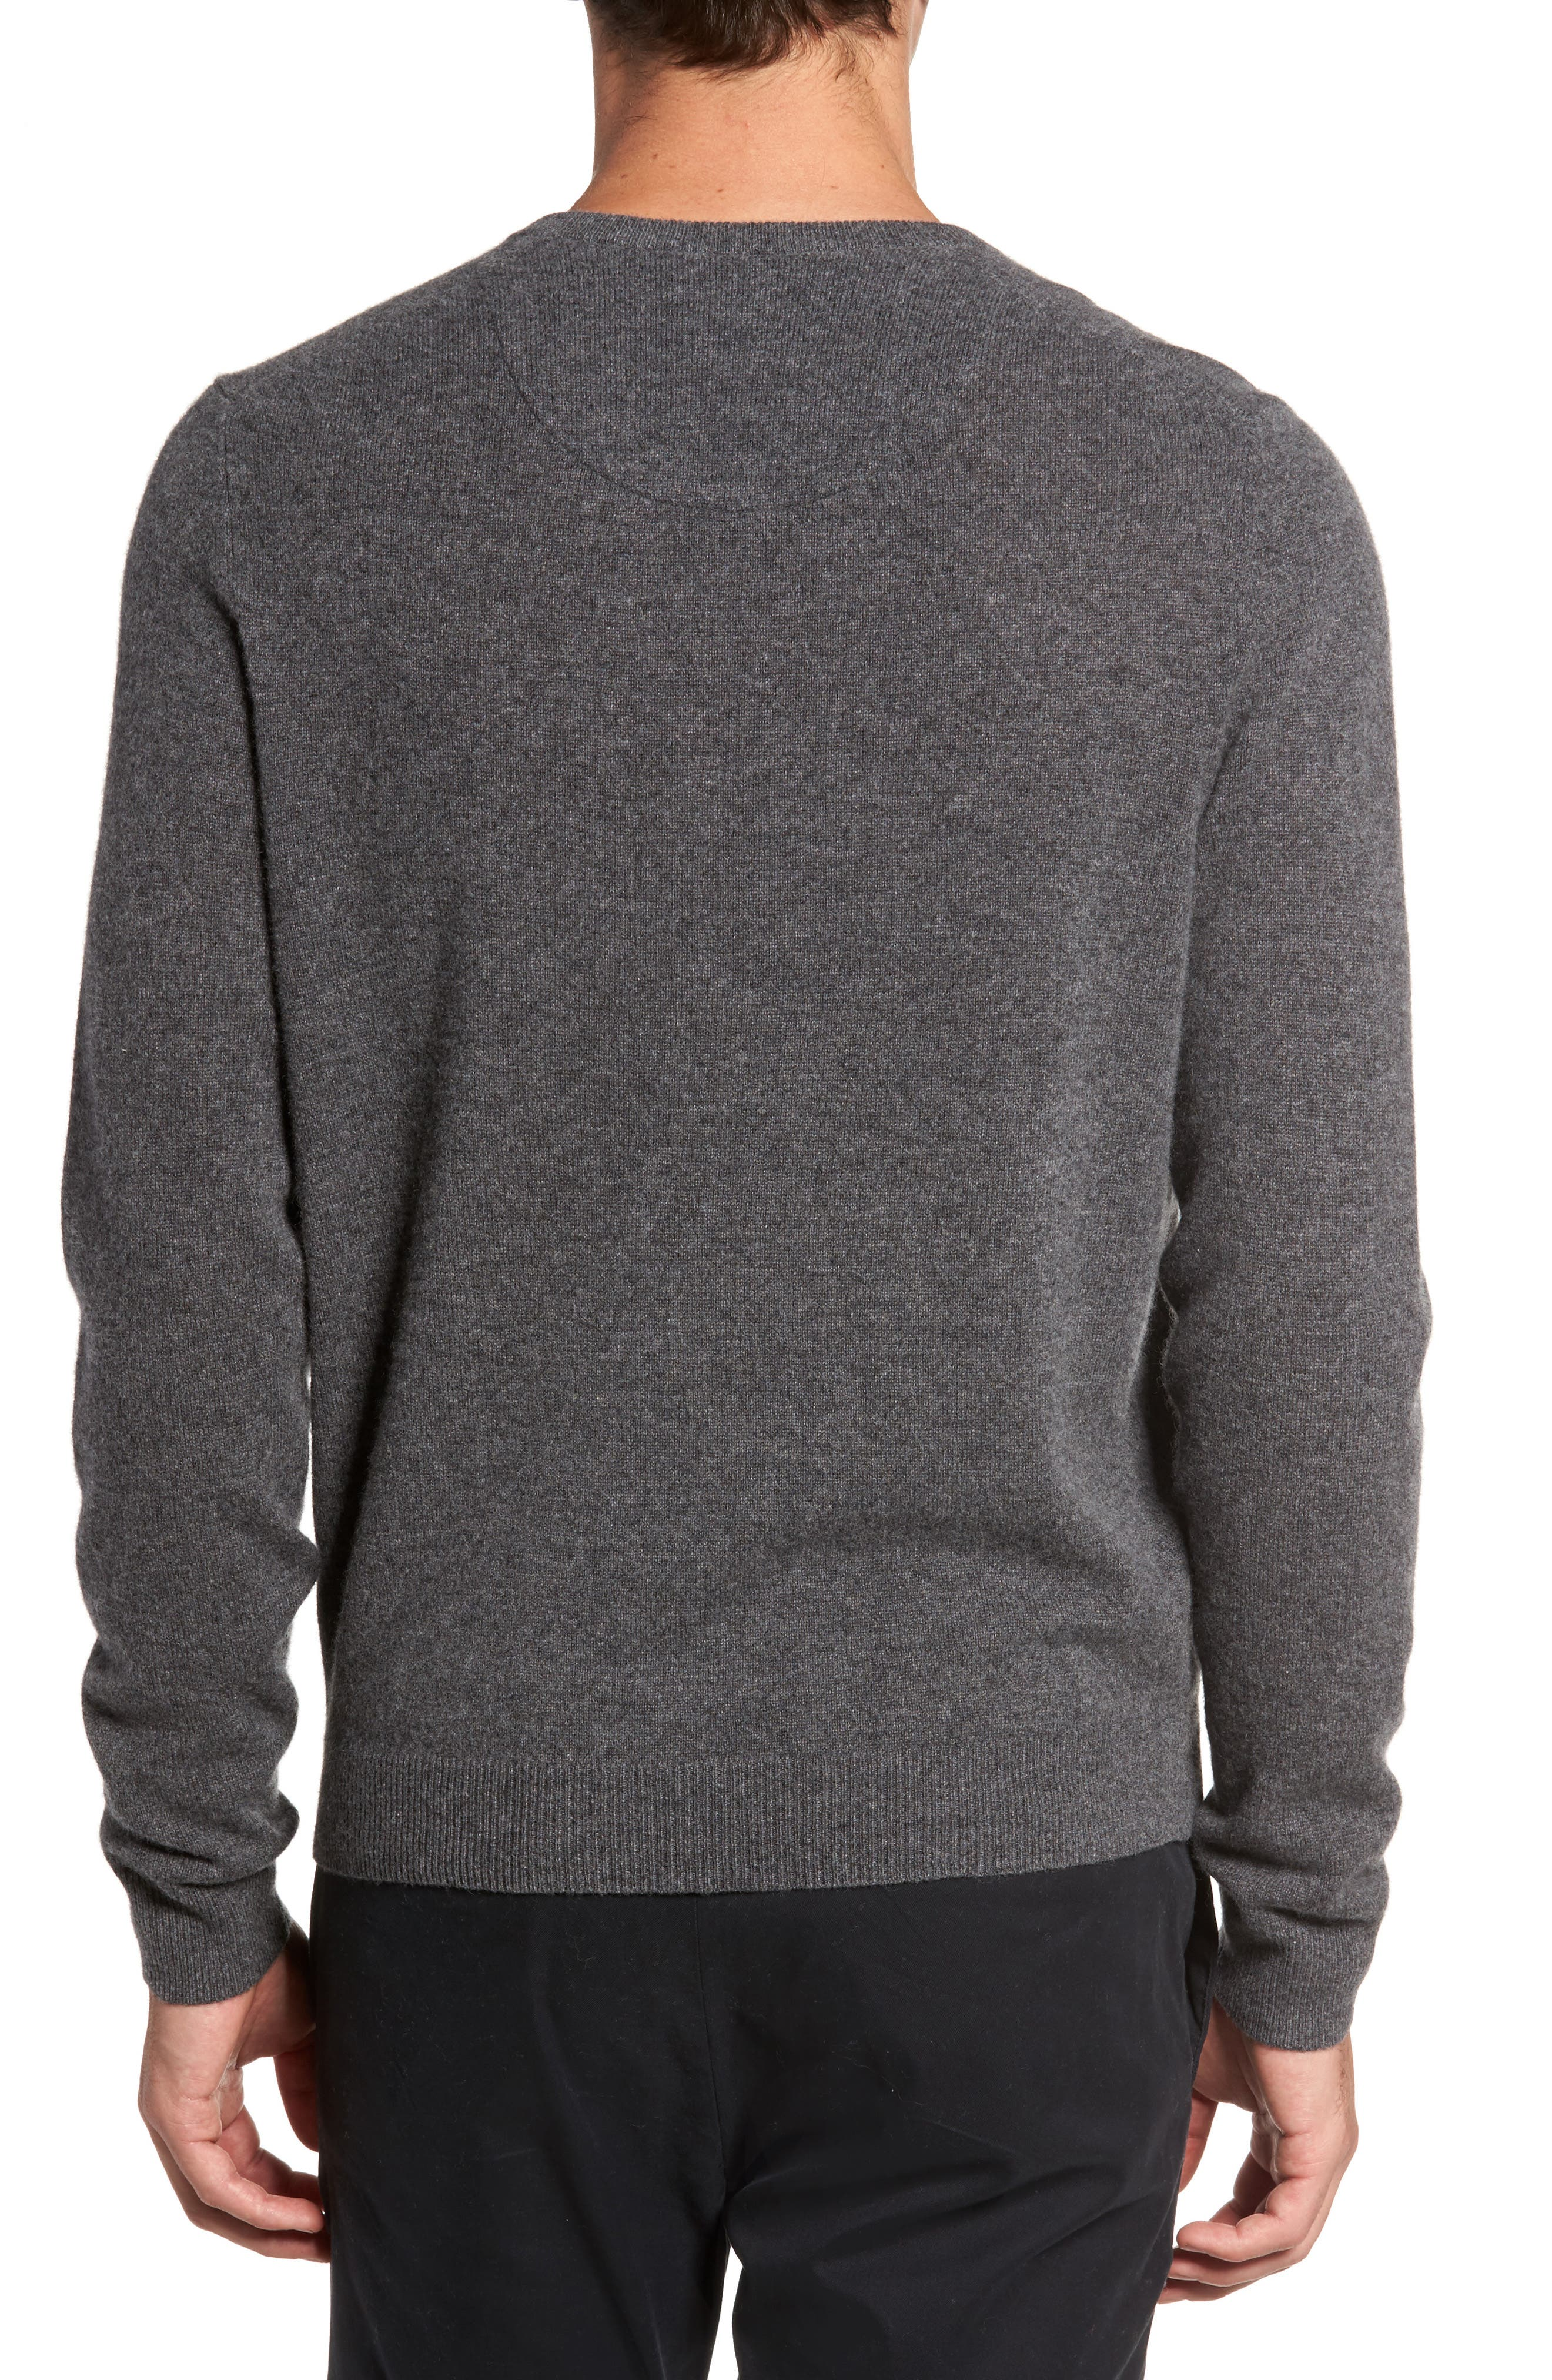 Cashmere V-Neck Sweater,                             Alternate thumbnail 2, color,                             GREY SHADE